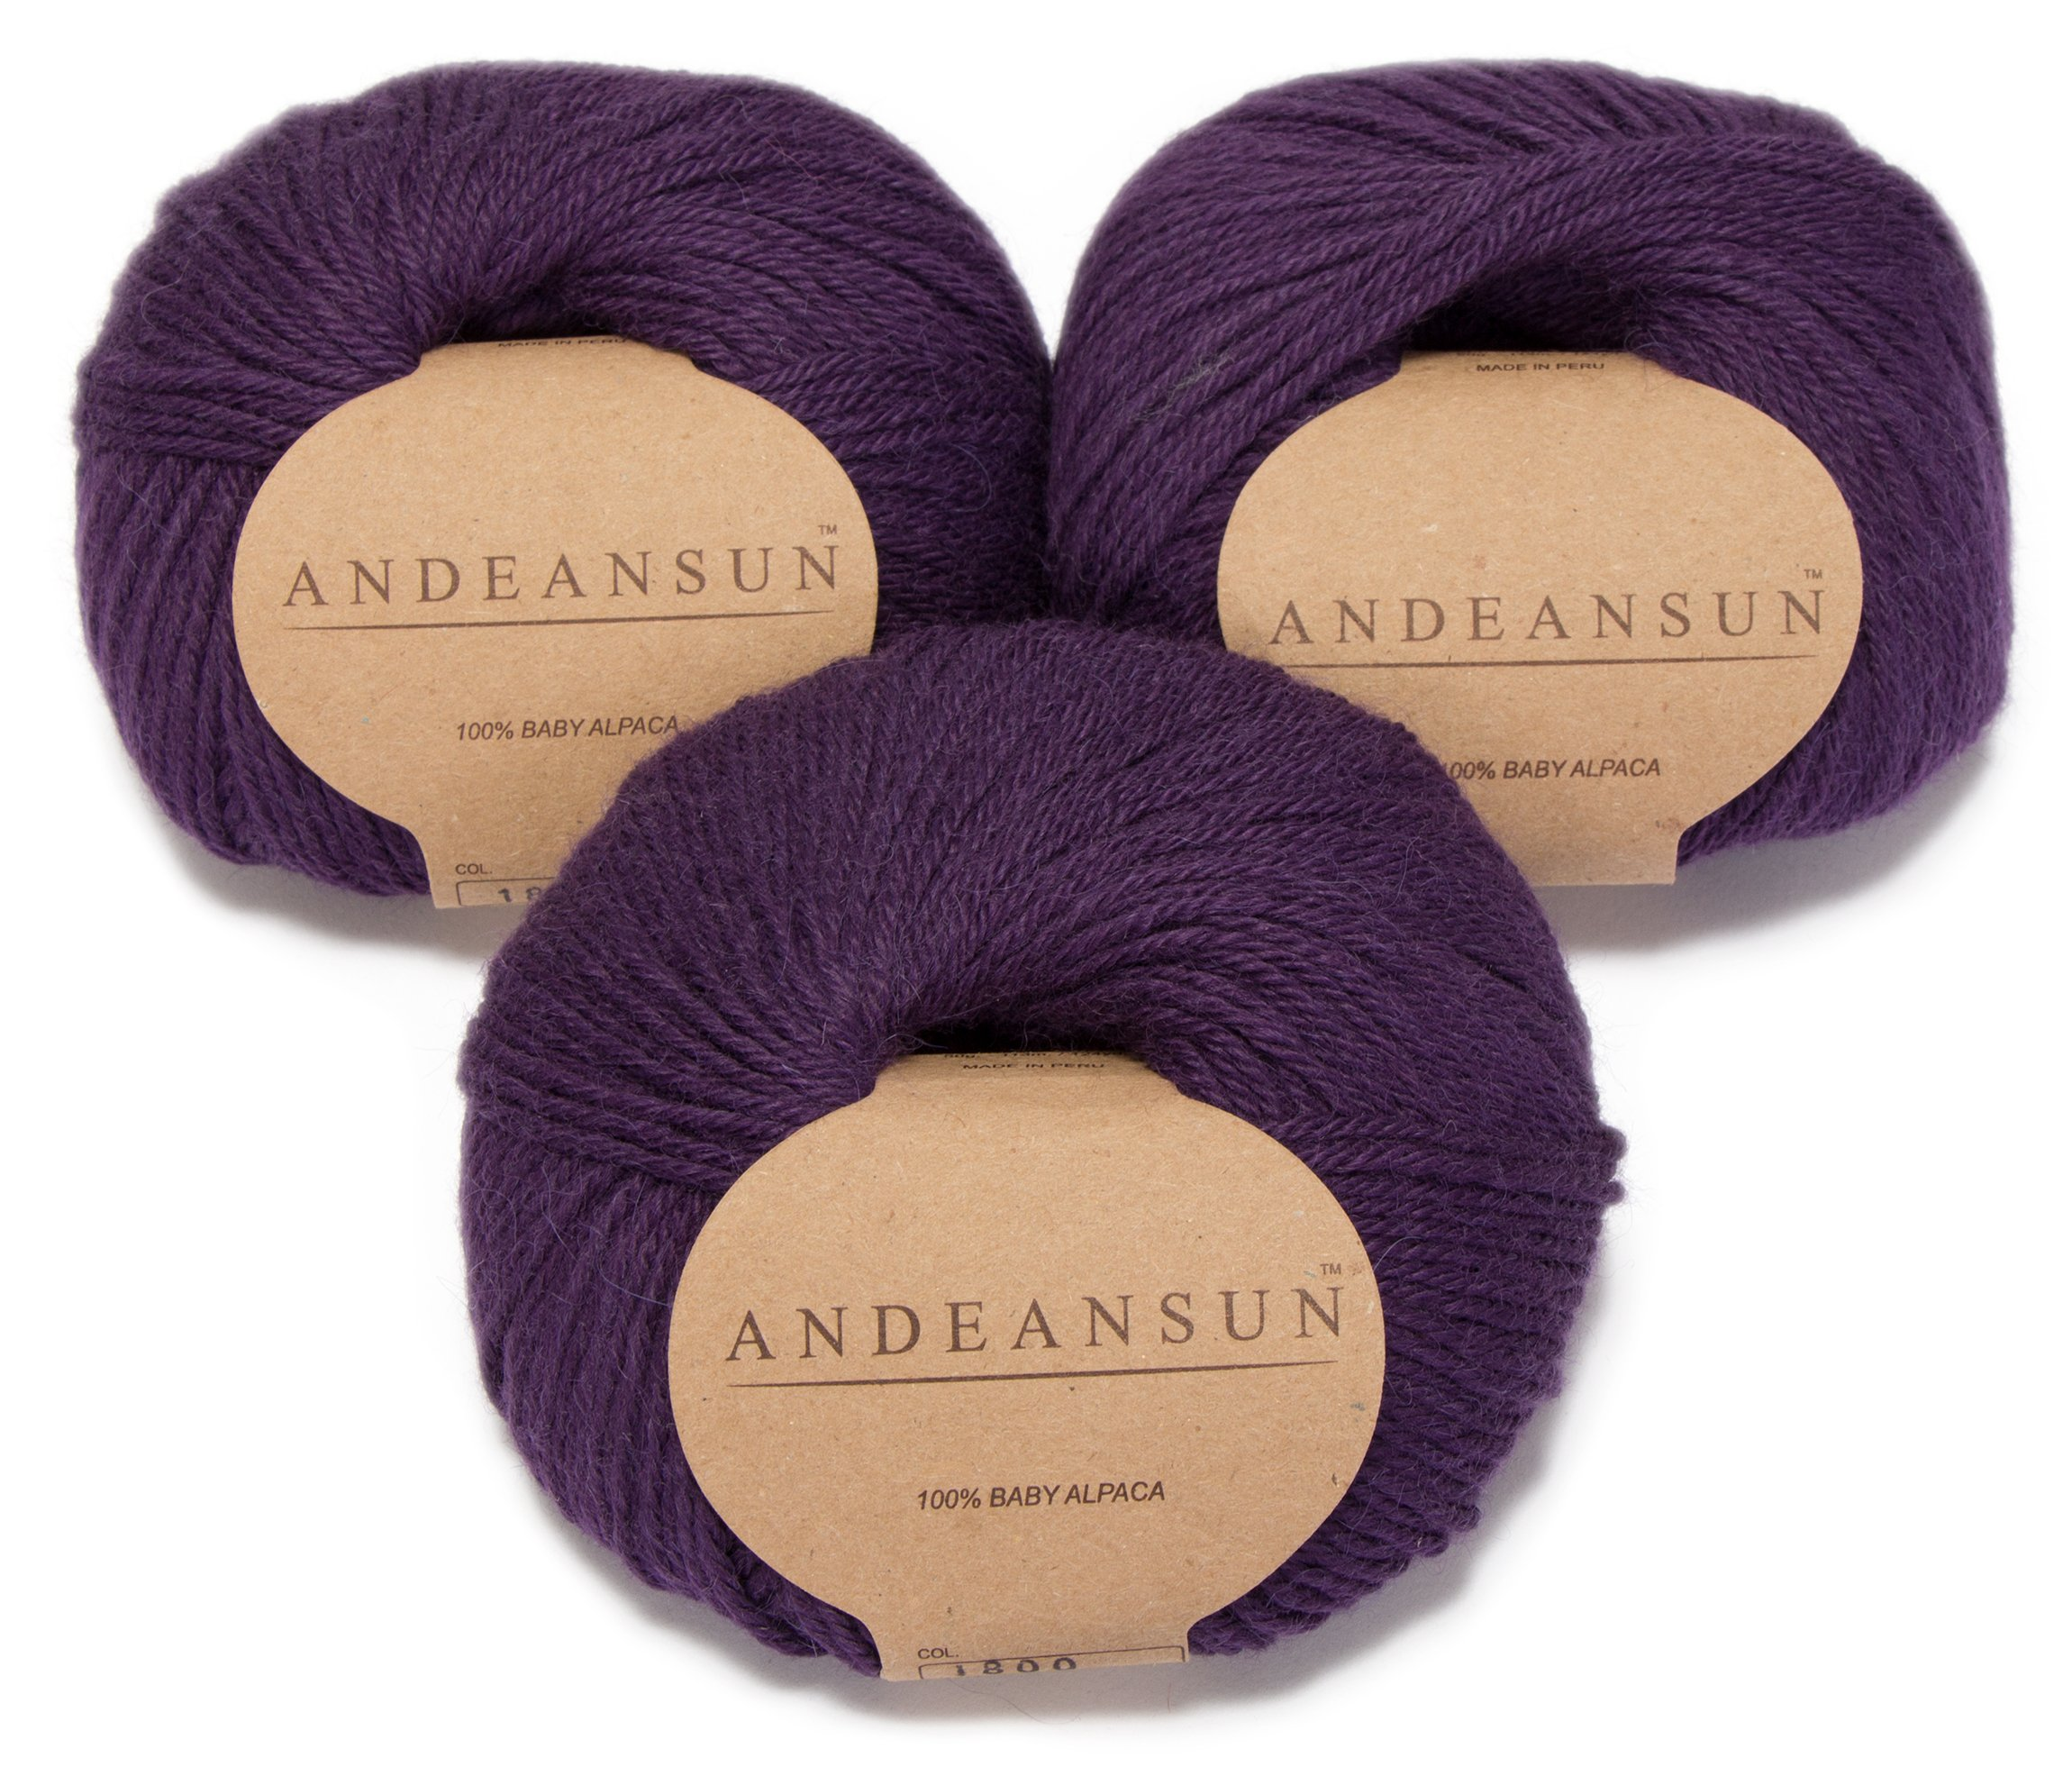 100% Baby Alpaca Yarn Skeins - Set of 3 (Dark Purple) - AndeanSun - Luxuriously Soft for Knitting, Crocheting - Great for Baby Garments, Scarves, Hats, and Craft Projects - Dark Purple